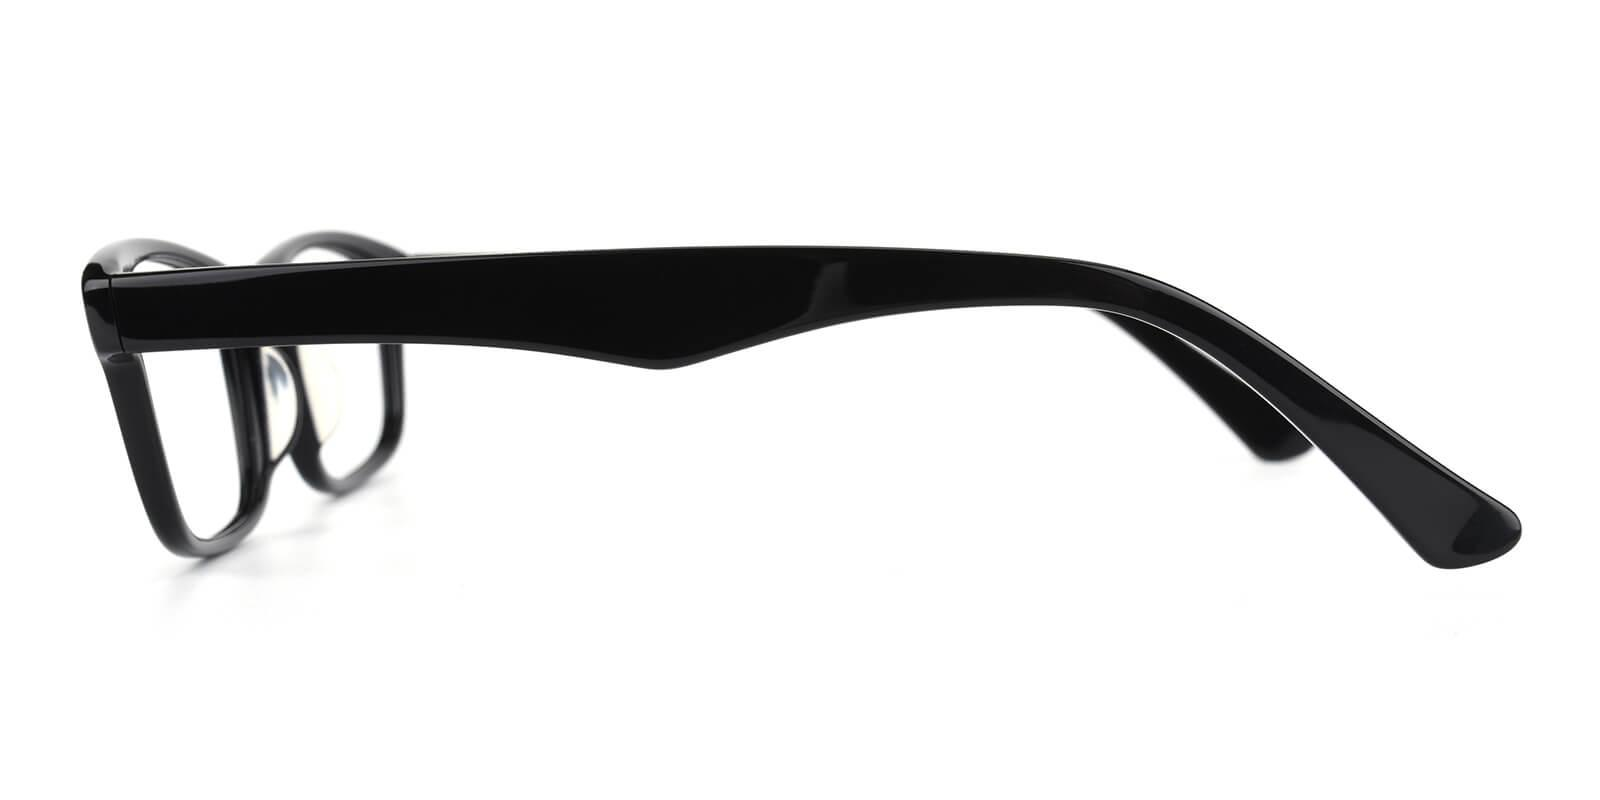 Katric-Black-Rectangle-Acetate-Eyeglasses-additional3